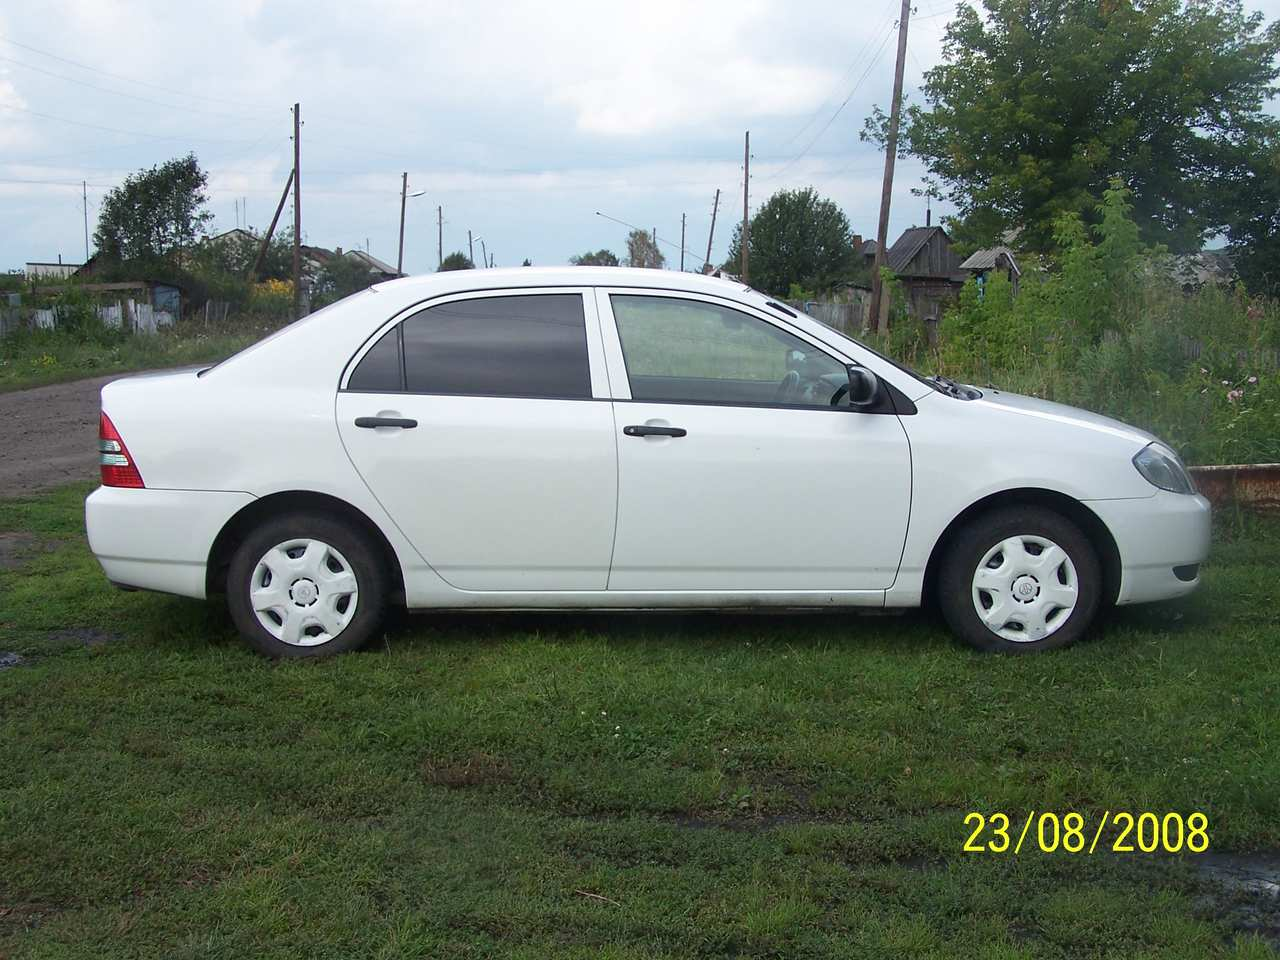 2002 toyota corolla photos 1 3 gasoline ff automatic for sale. Black Bedroom Furniture Sets. Home Design Ideas